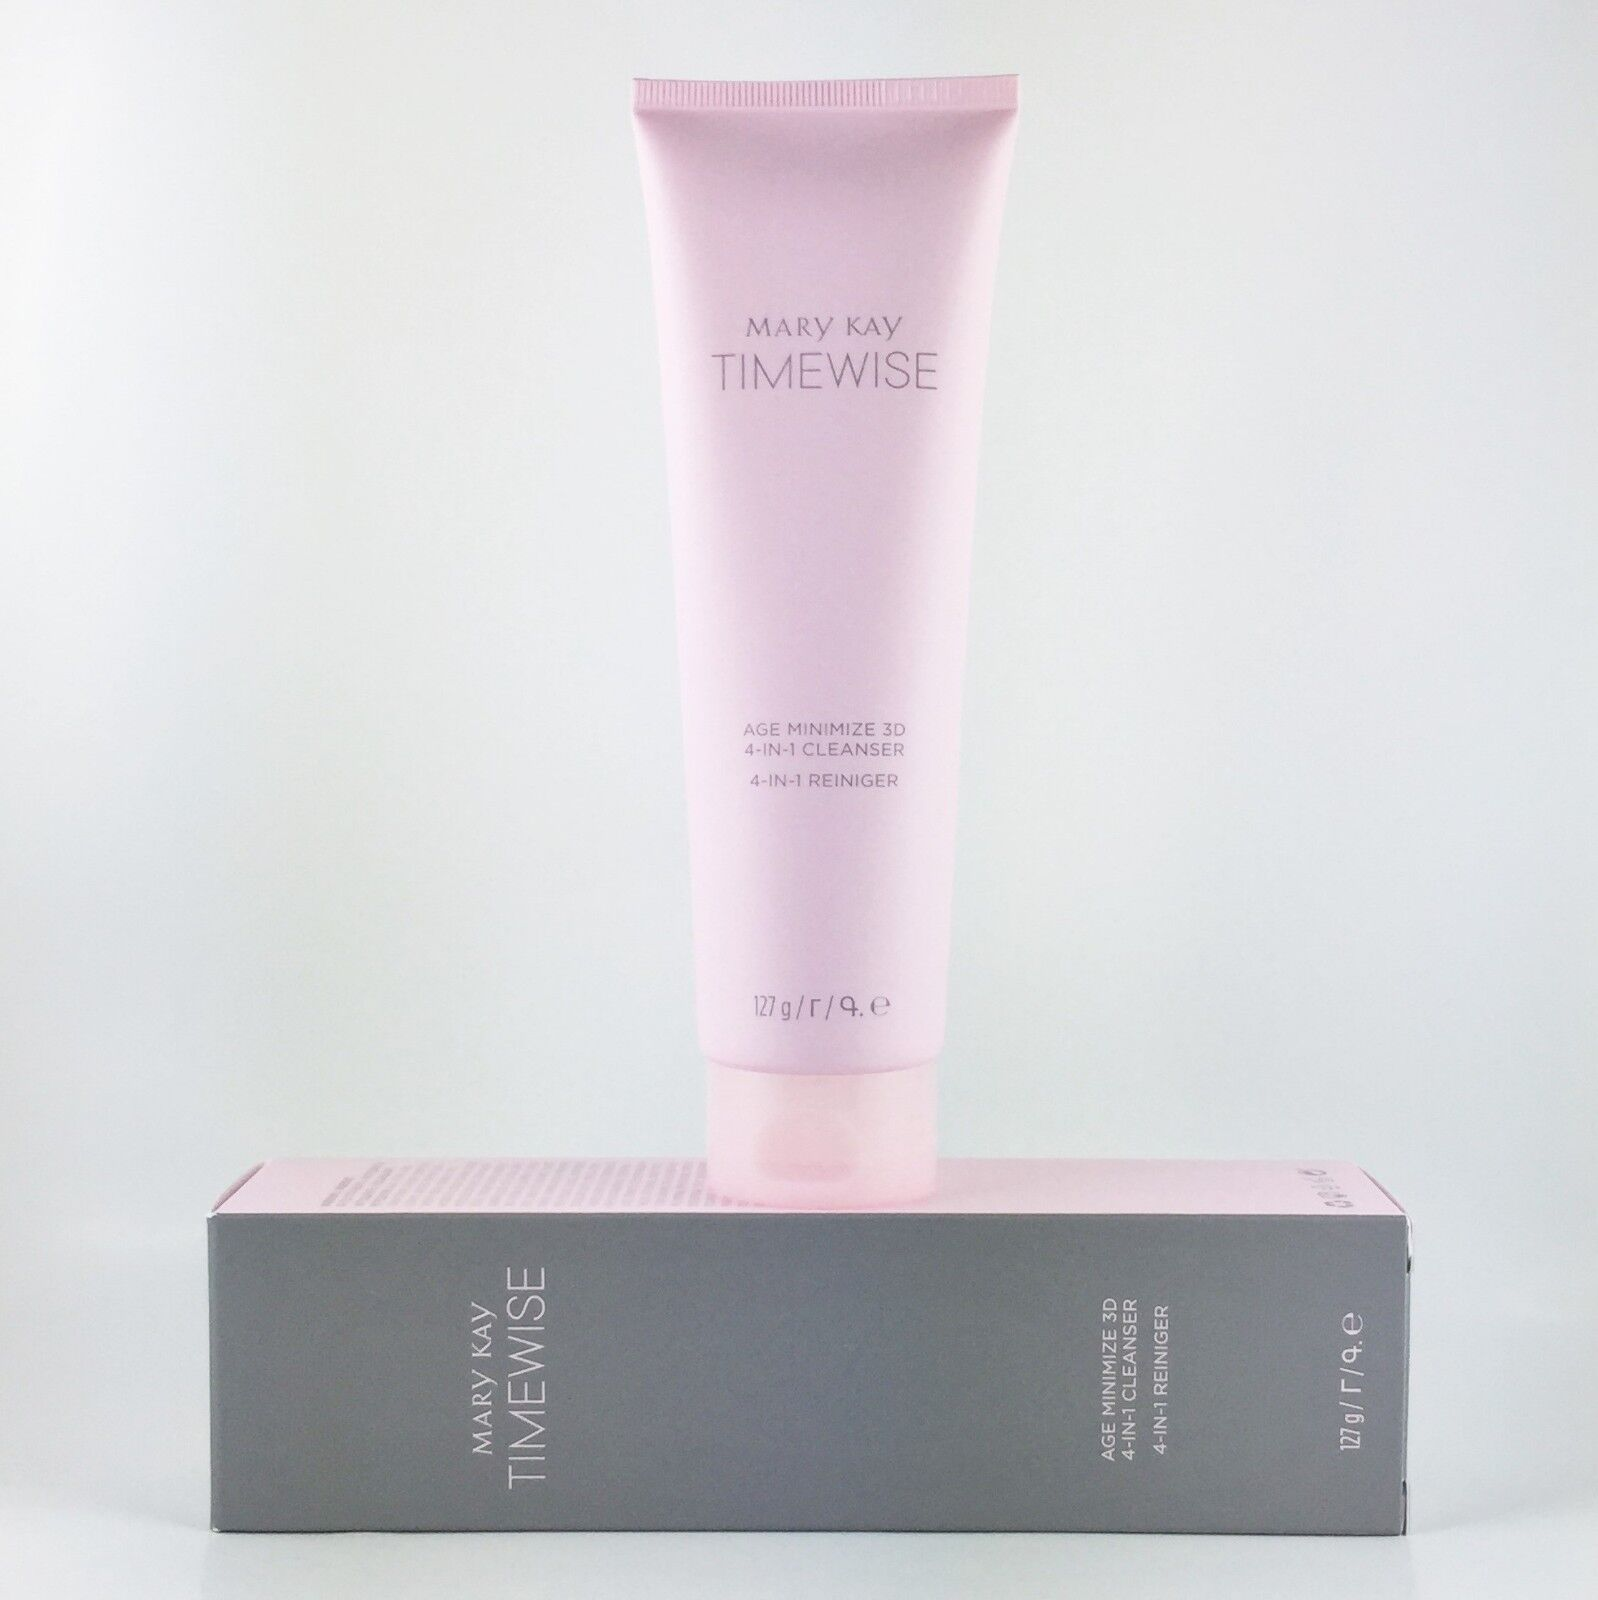 Mary Kay TimeWise Age Minimize 3D 4-in-1 Cleanser, Neu OVP